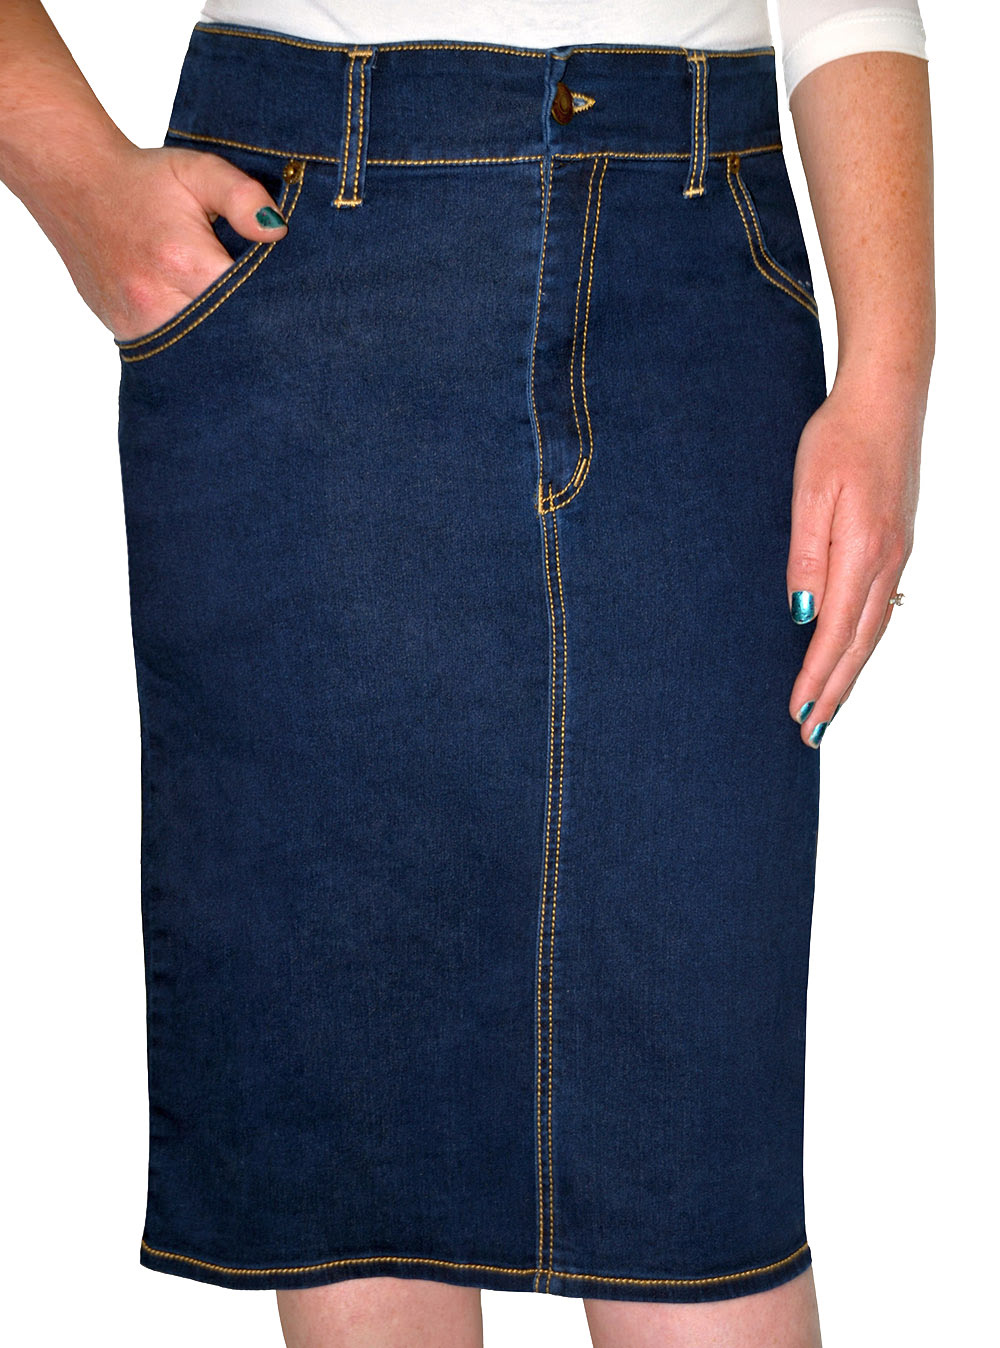 Modest Denim Skirts fo Girls. Modern and Modest. Kosher Casual